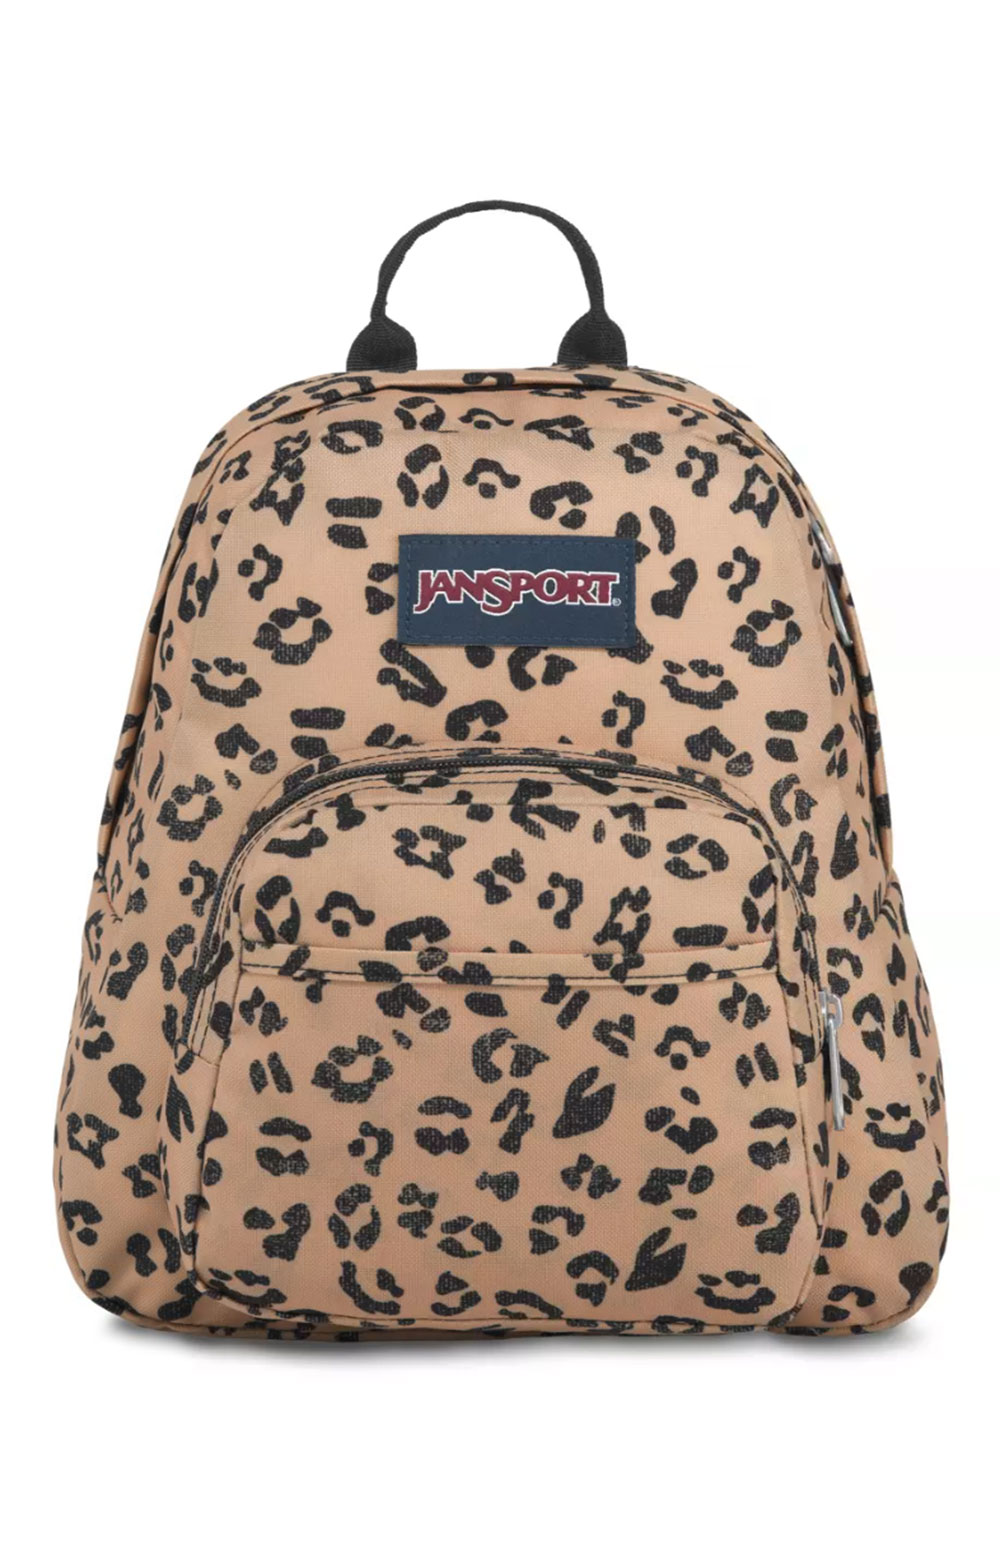 Half Pint Mini Backpack - Show Your Spots